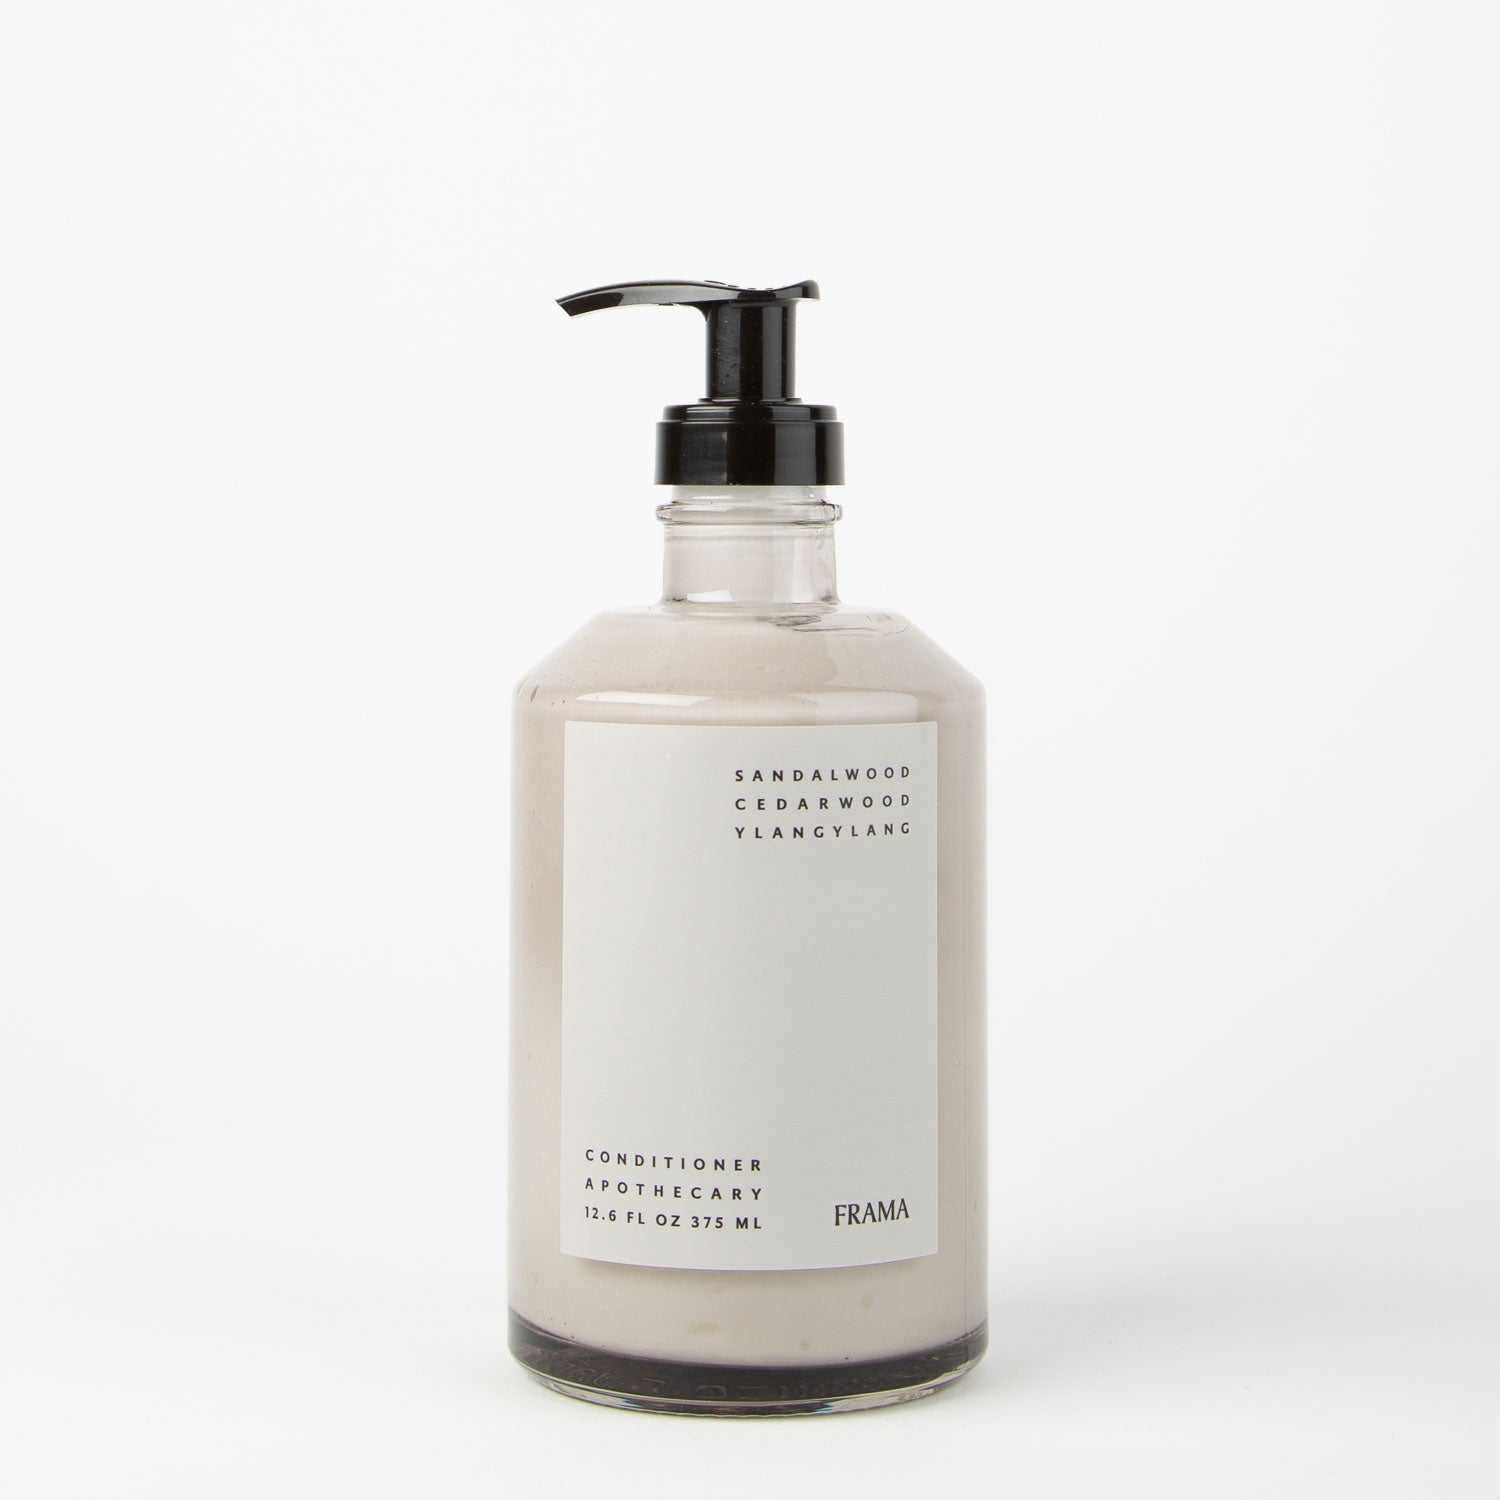 Apothecary Conditioner